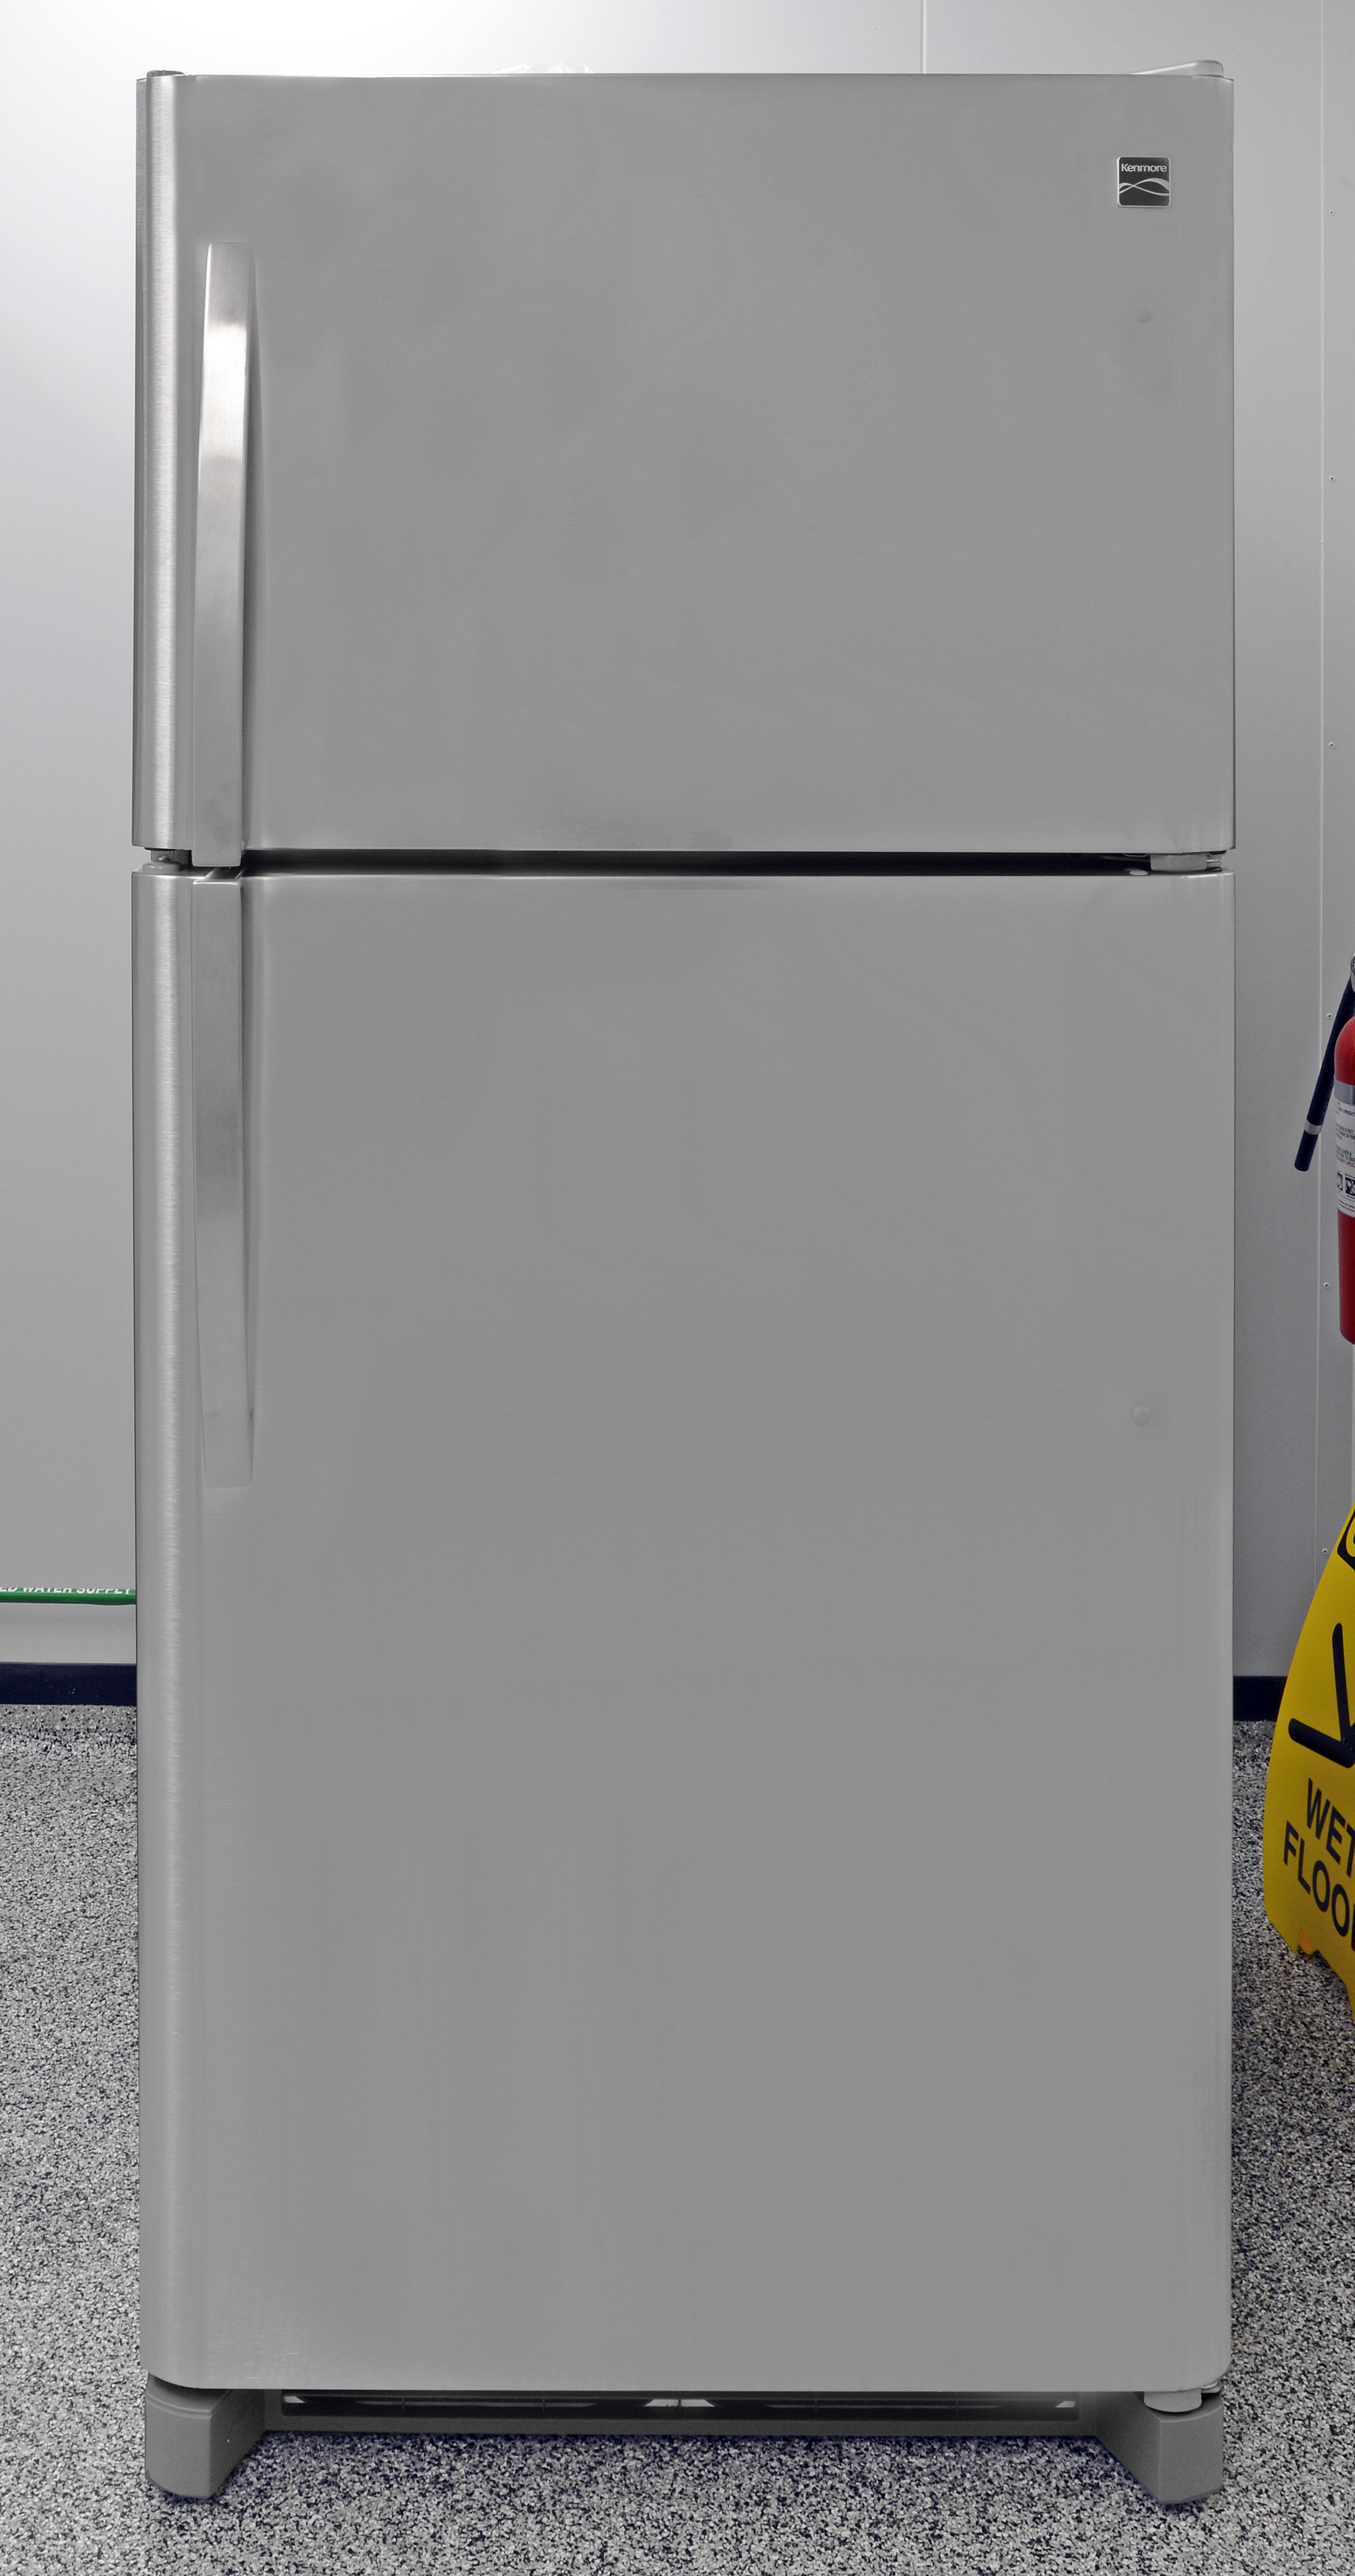 The Kenmore 70623 top freezer is built on a Frigidaire platform.